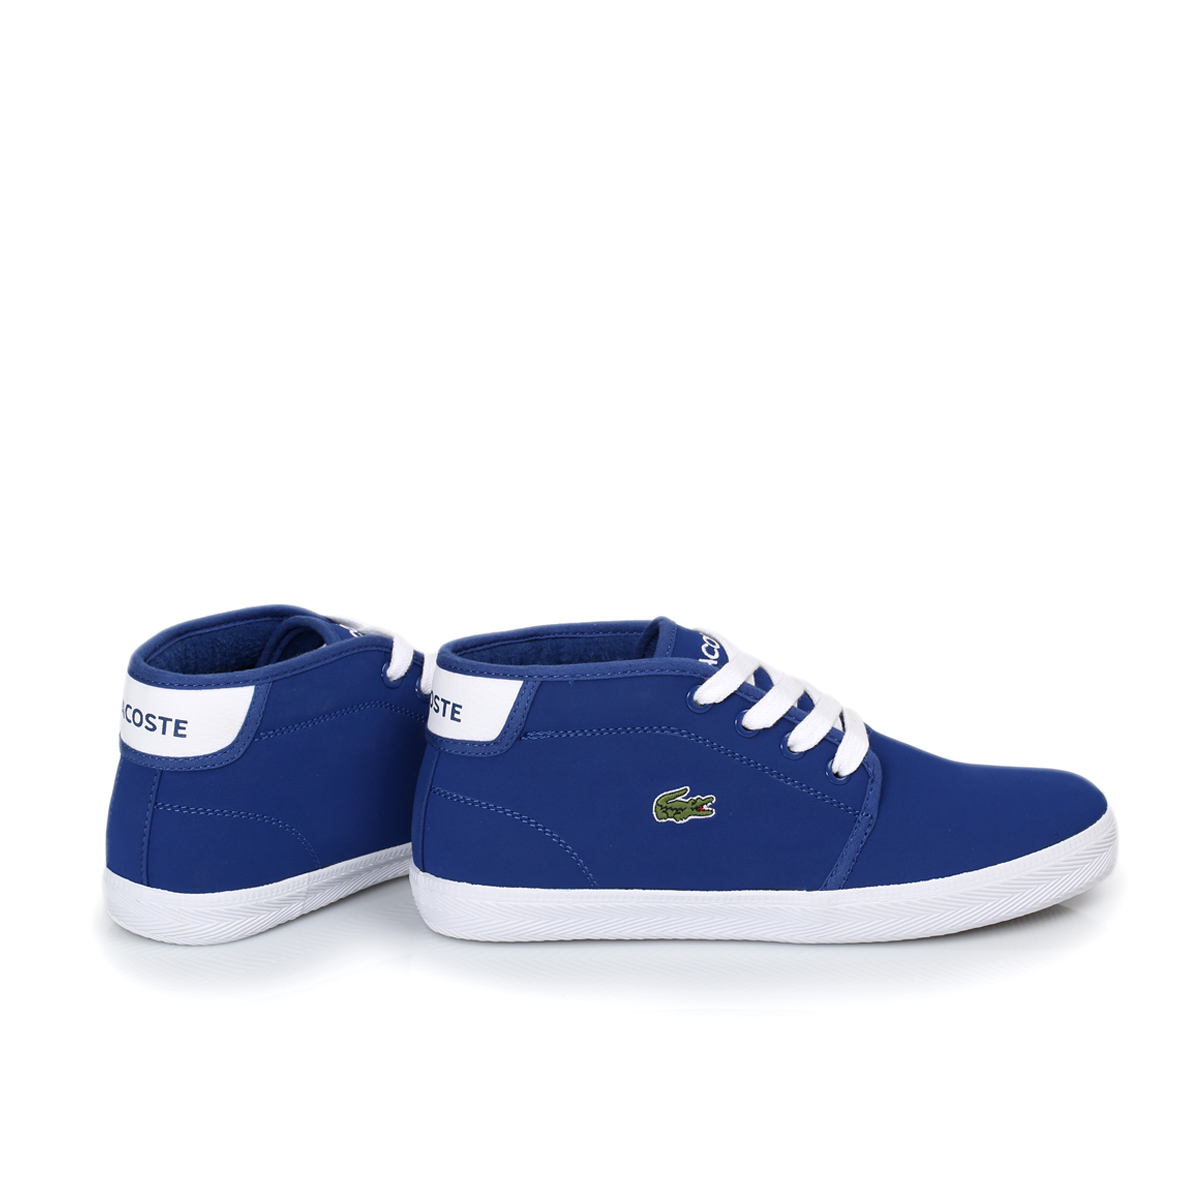 Lacoste Ampthill Blue White Kids Trainers Sneakers Shoes ...